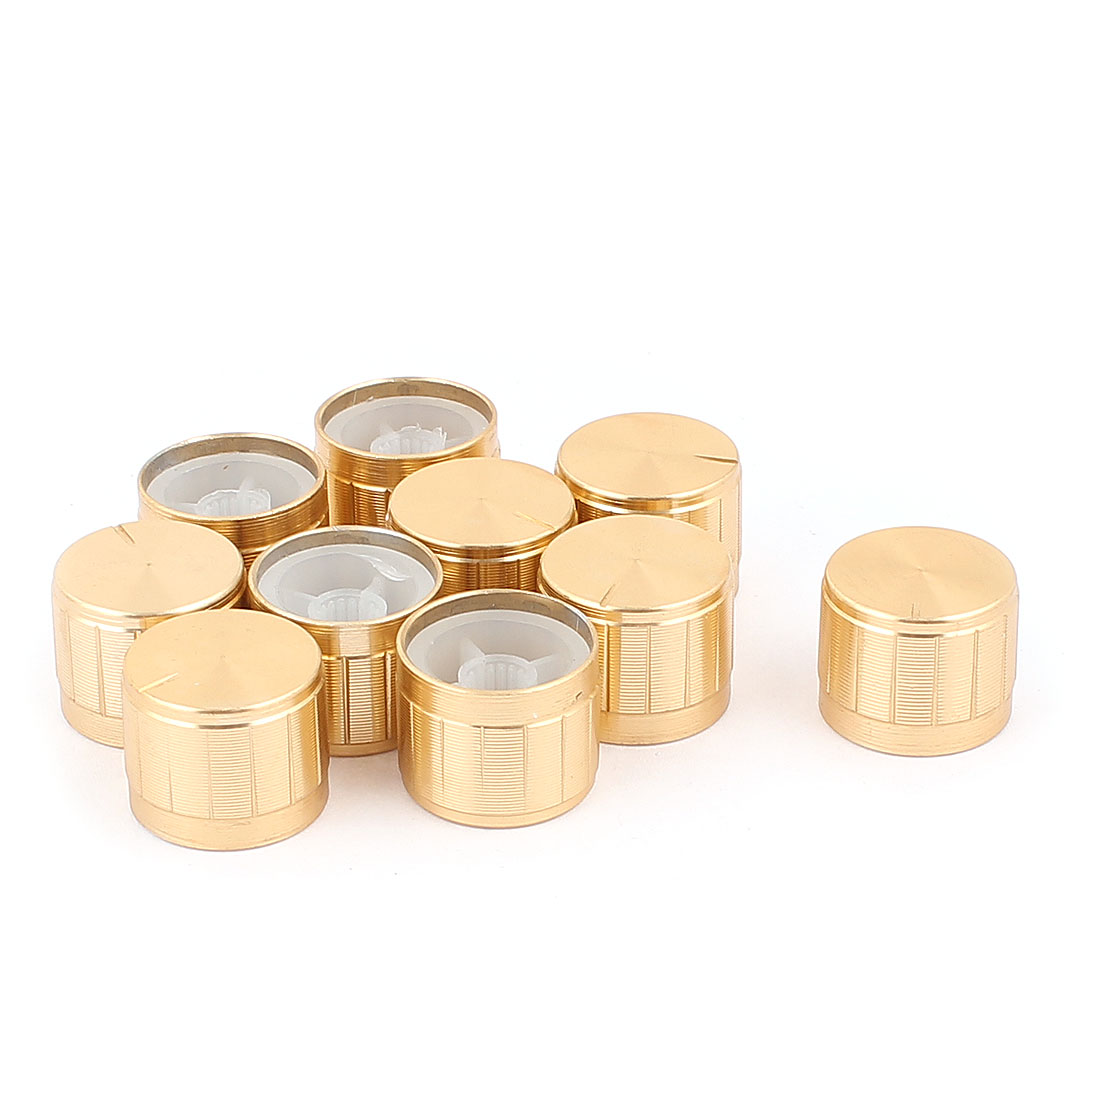 10 Pcs 21mm x 6mm Aluminium Alloy Potentiometer Control Knob Mini Cap Knurled Button Gold Tone